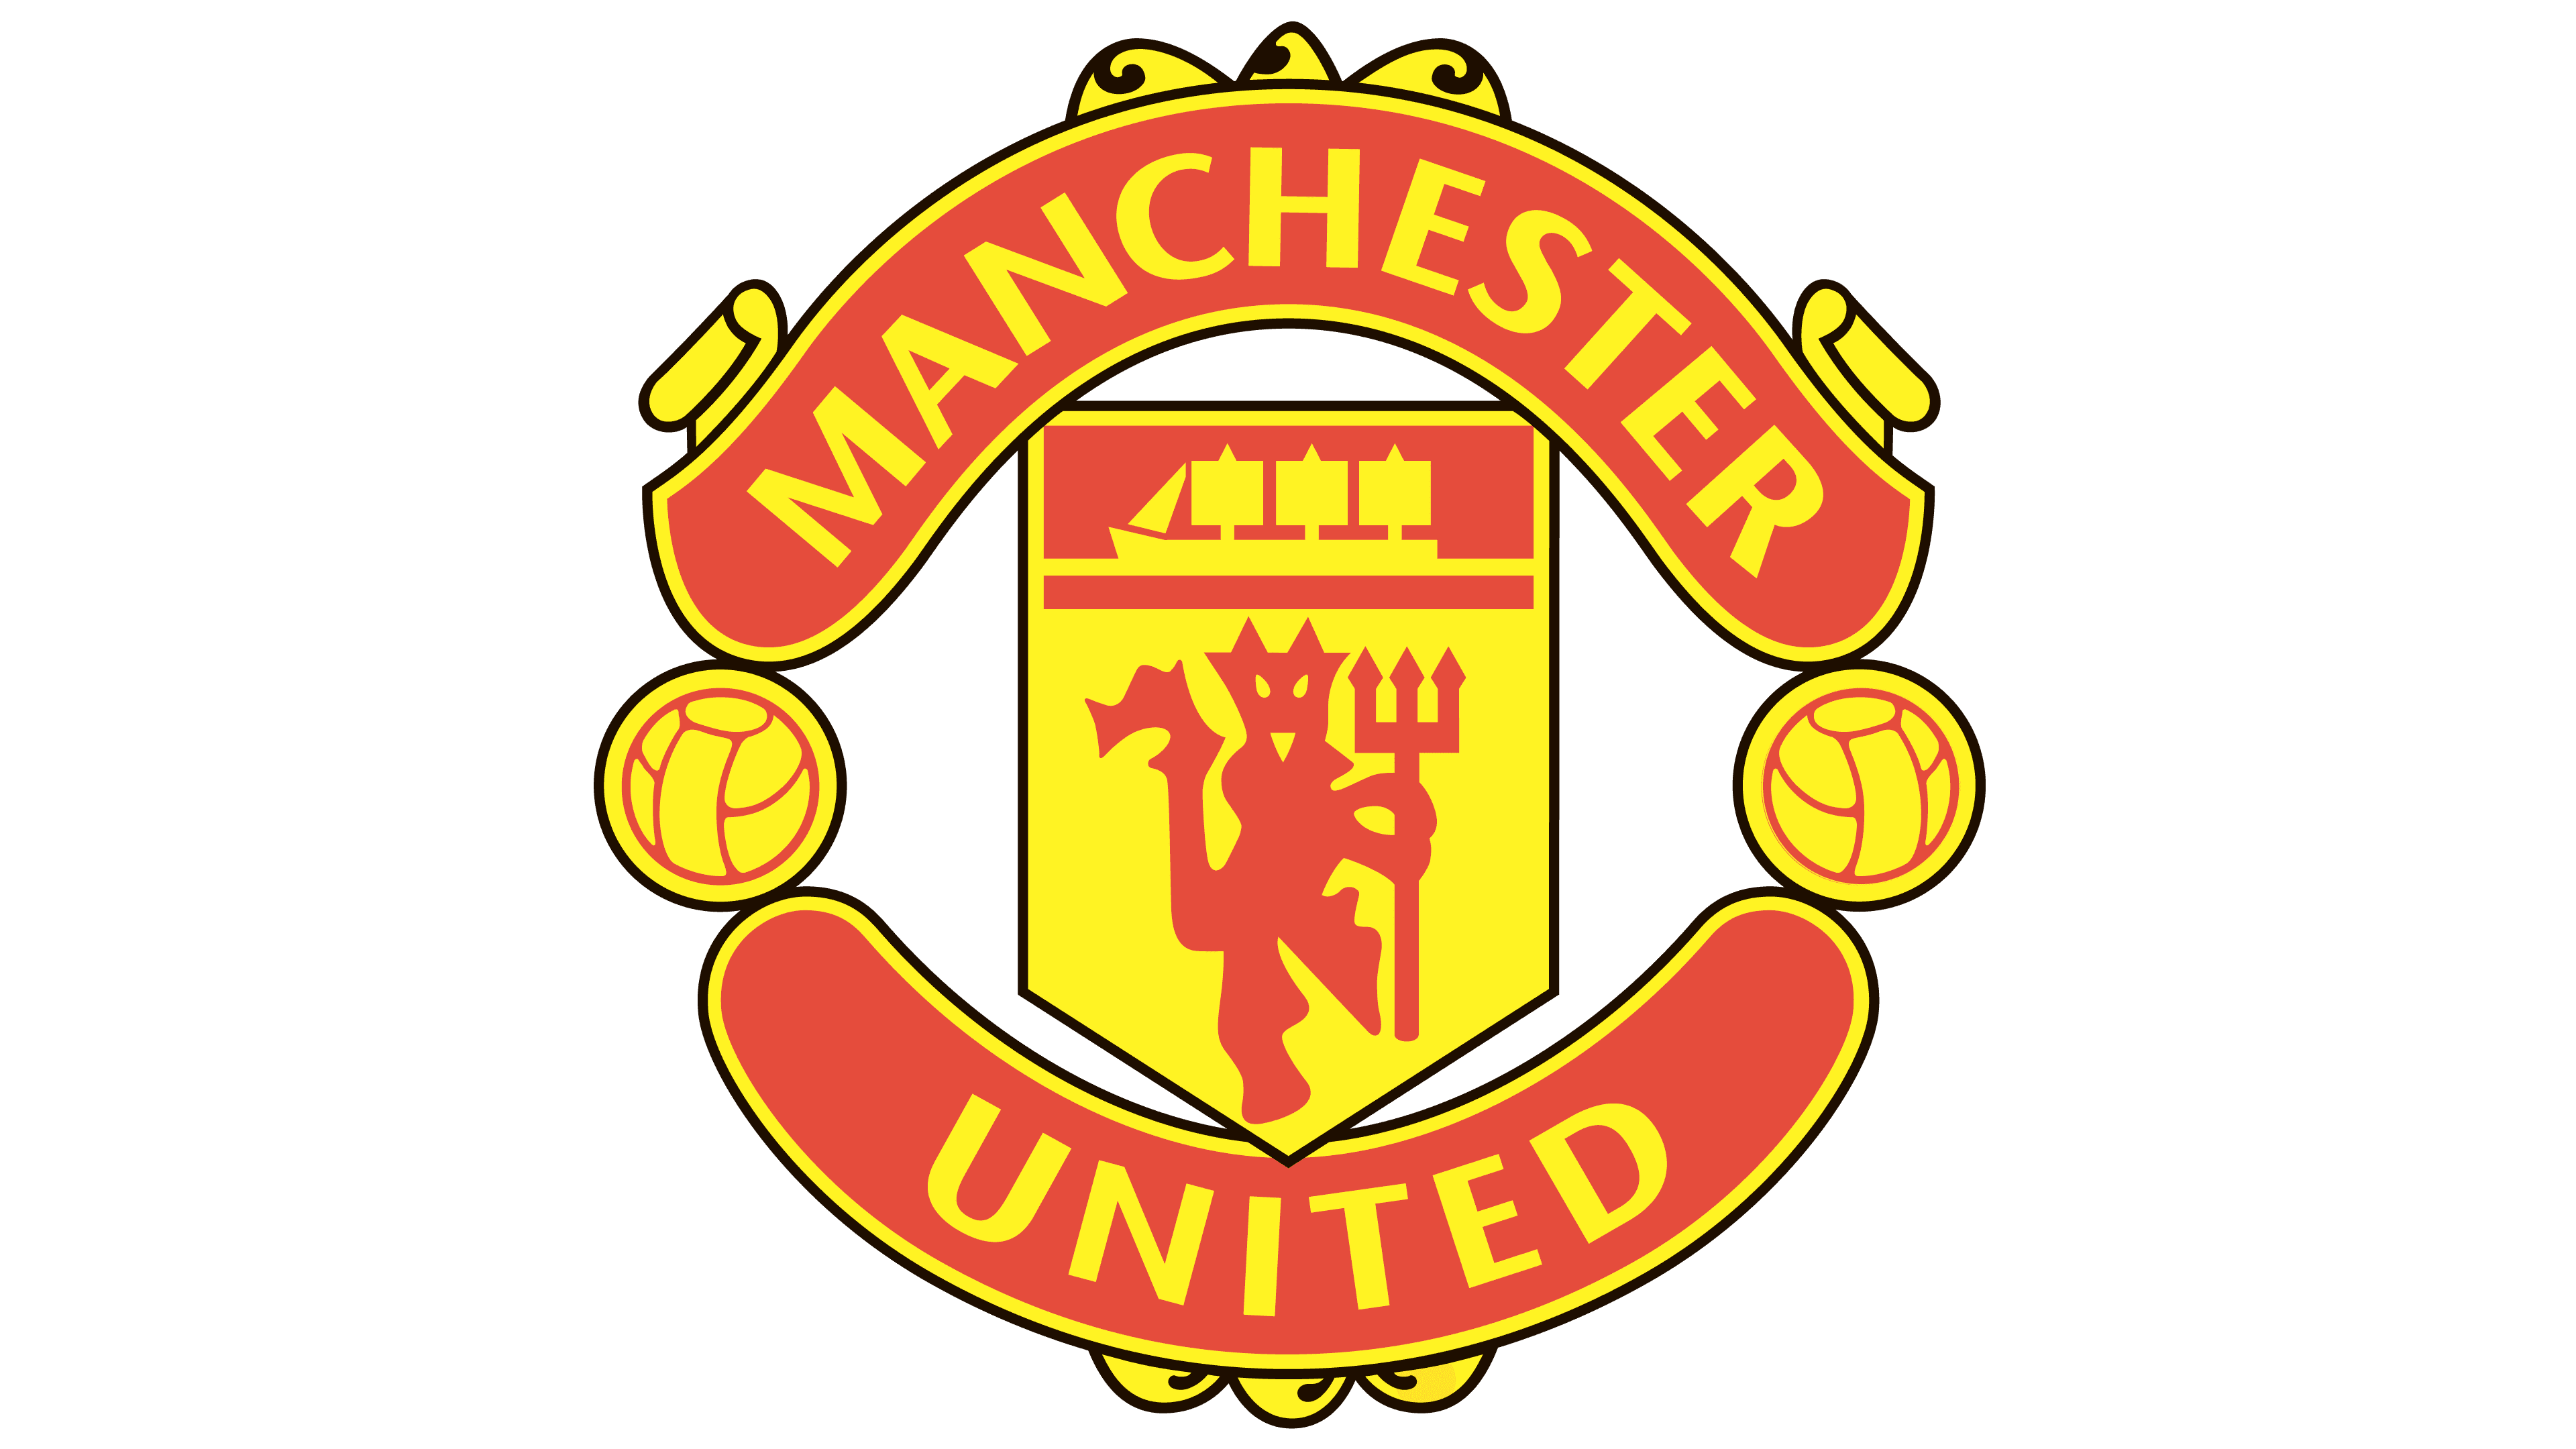 Manchester United Logo | The most famous brands and ...